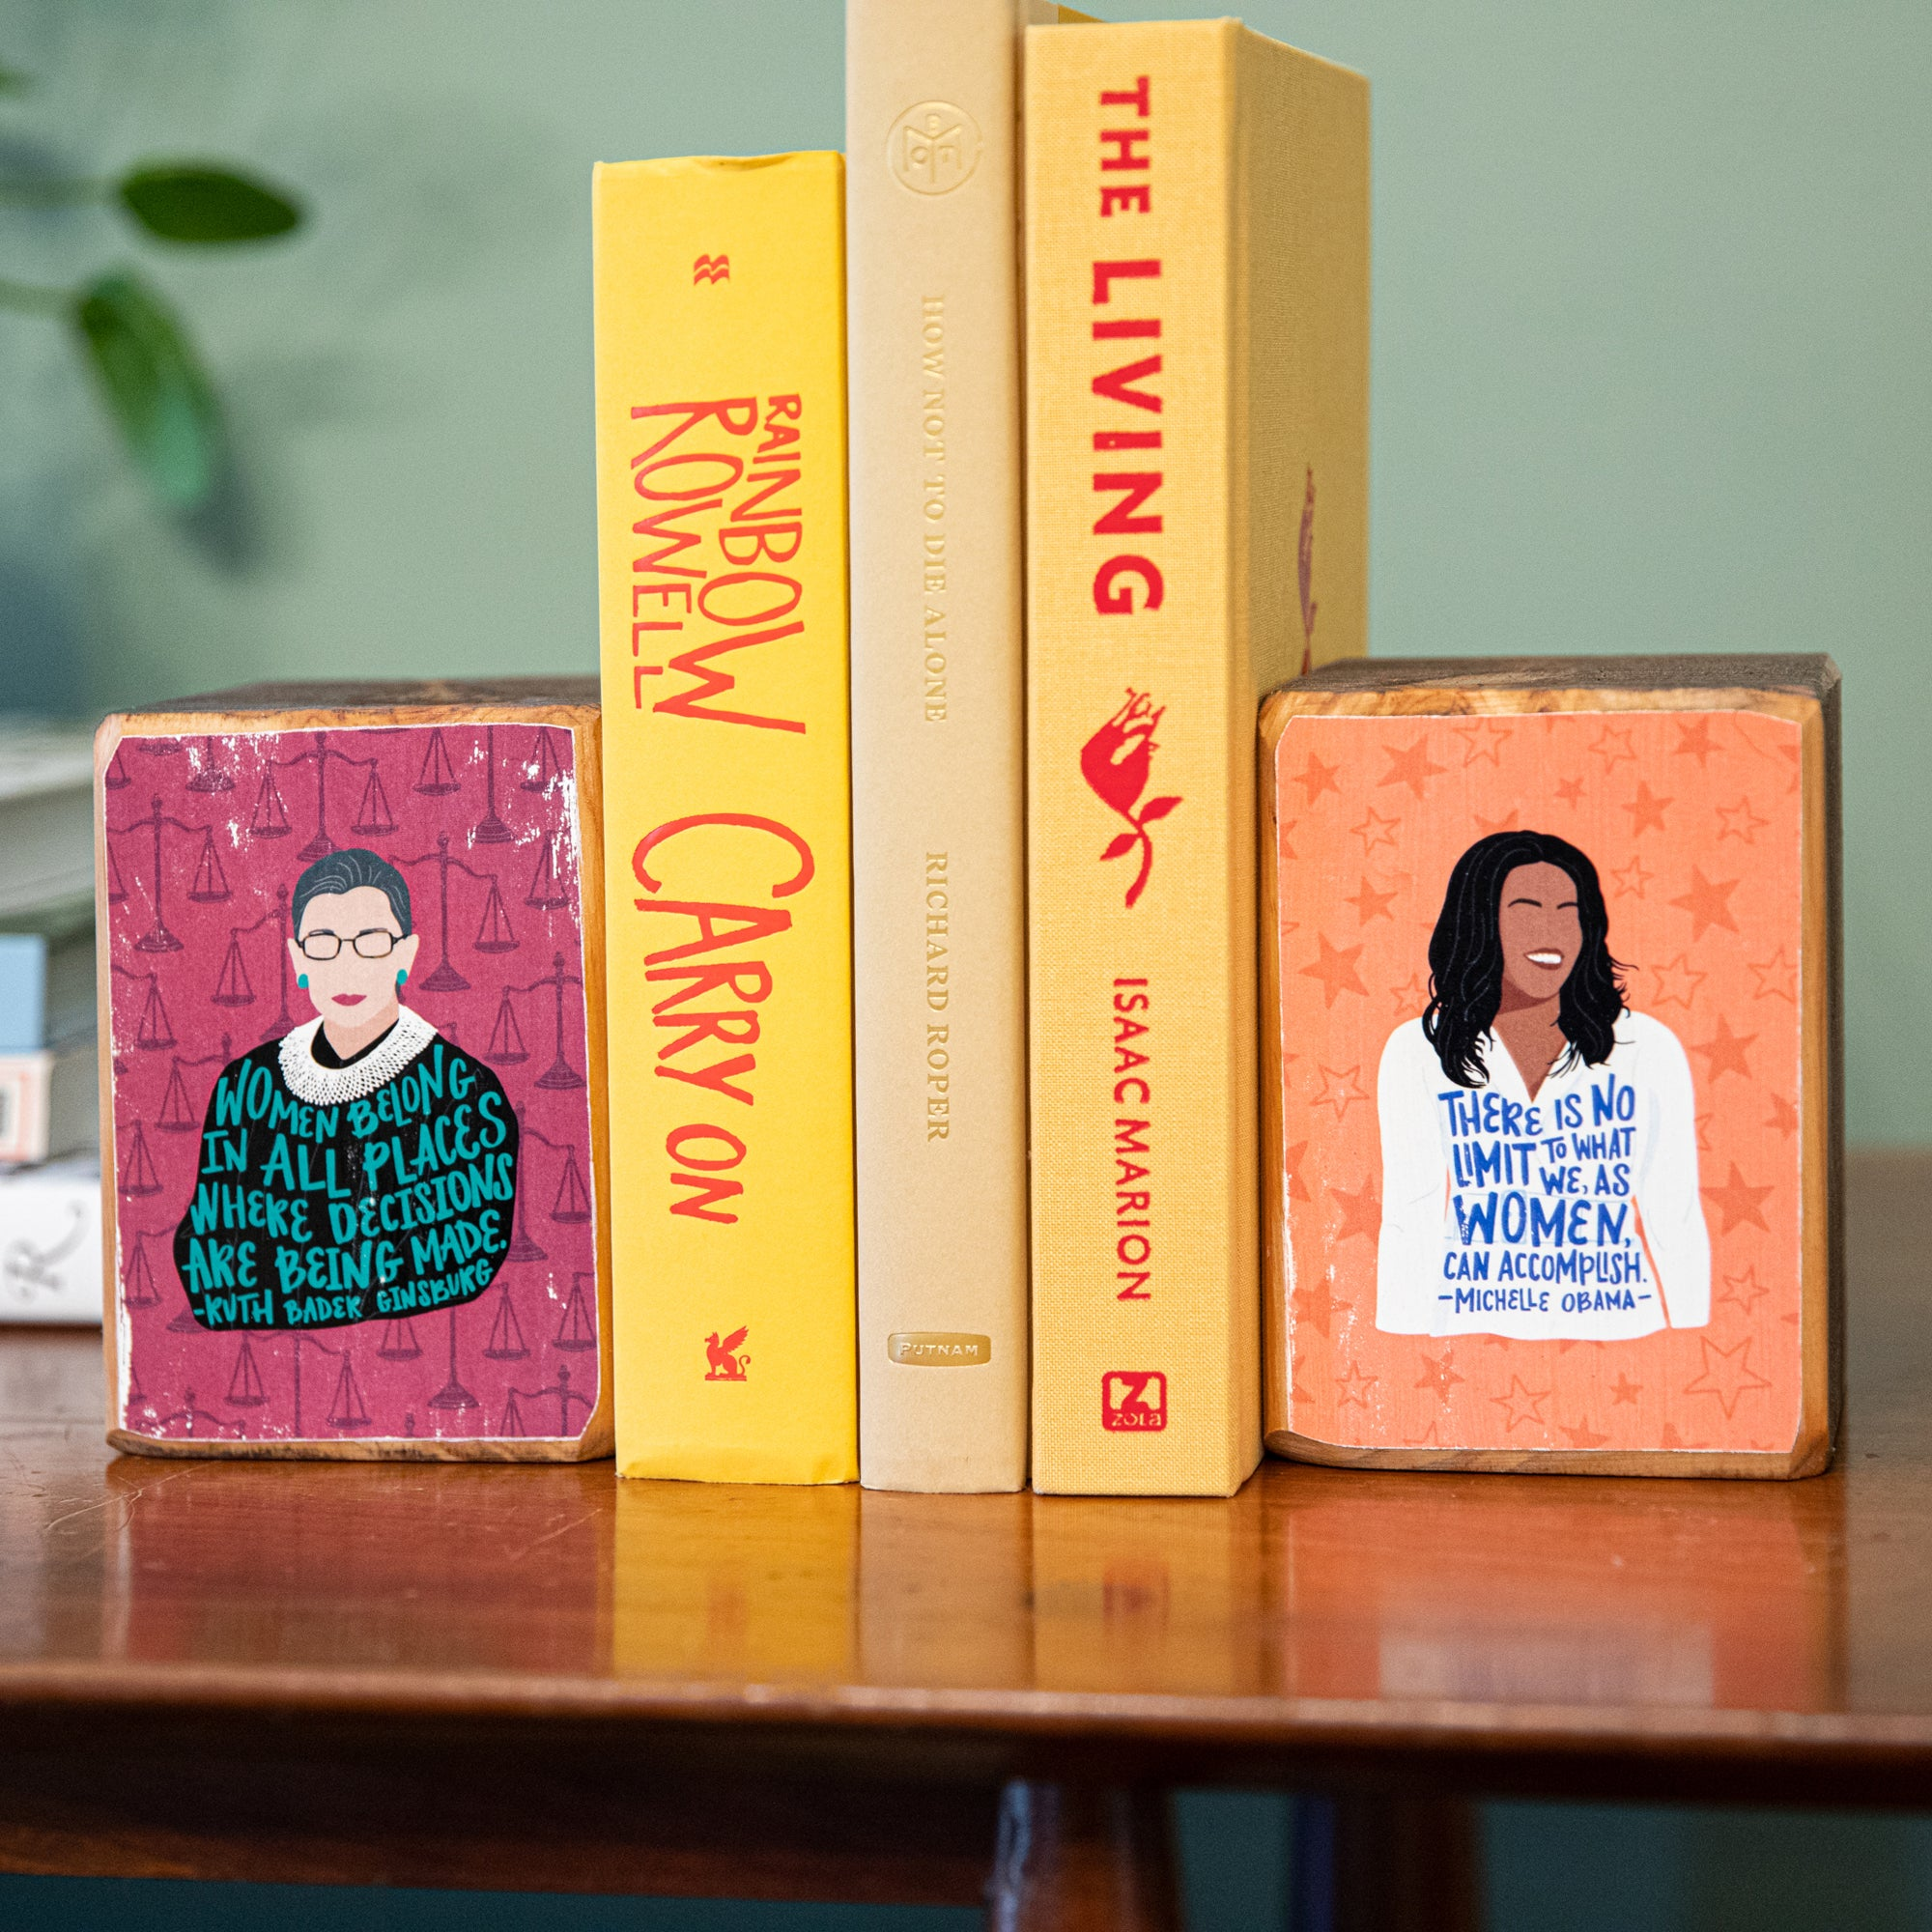 Build your own feminist bookend set by ARCHd Ruth Bader Ginsburg and Michelle Obama illustrations